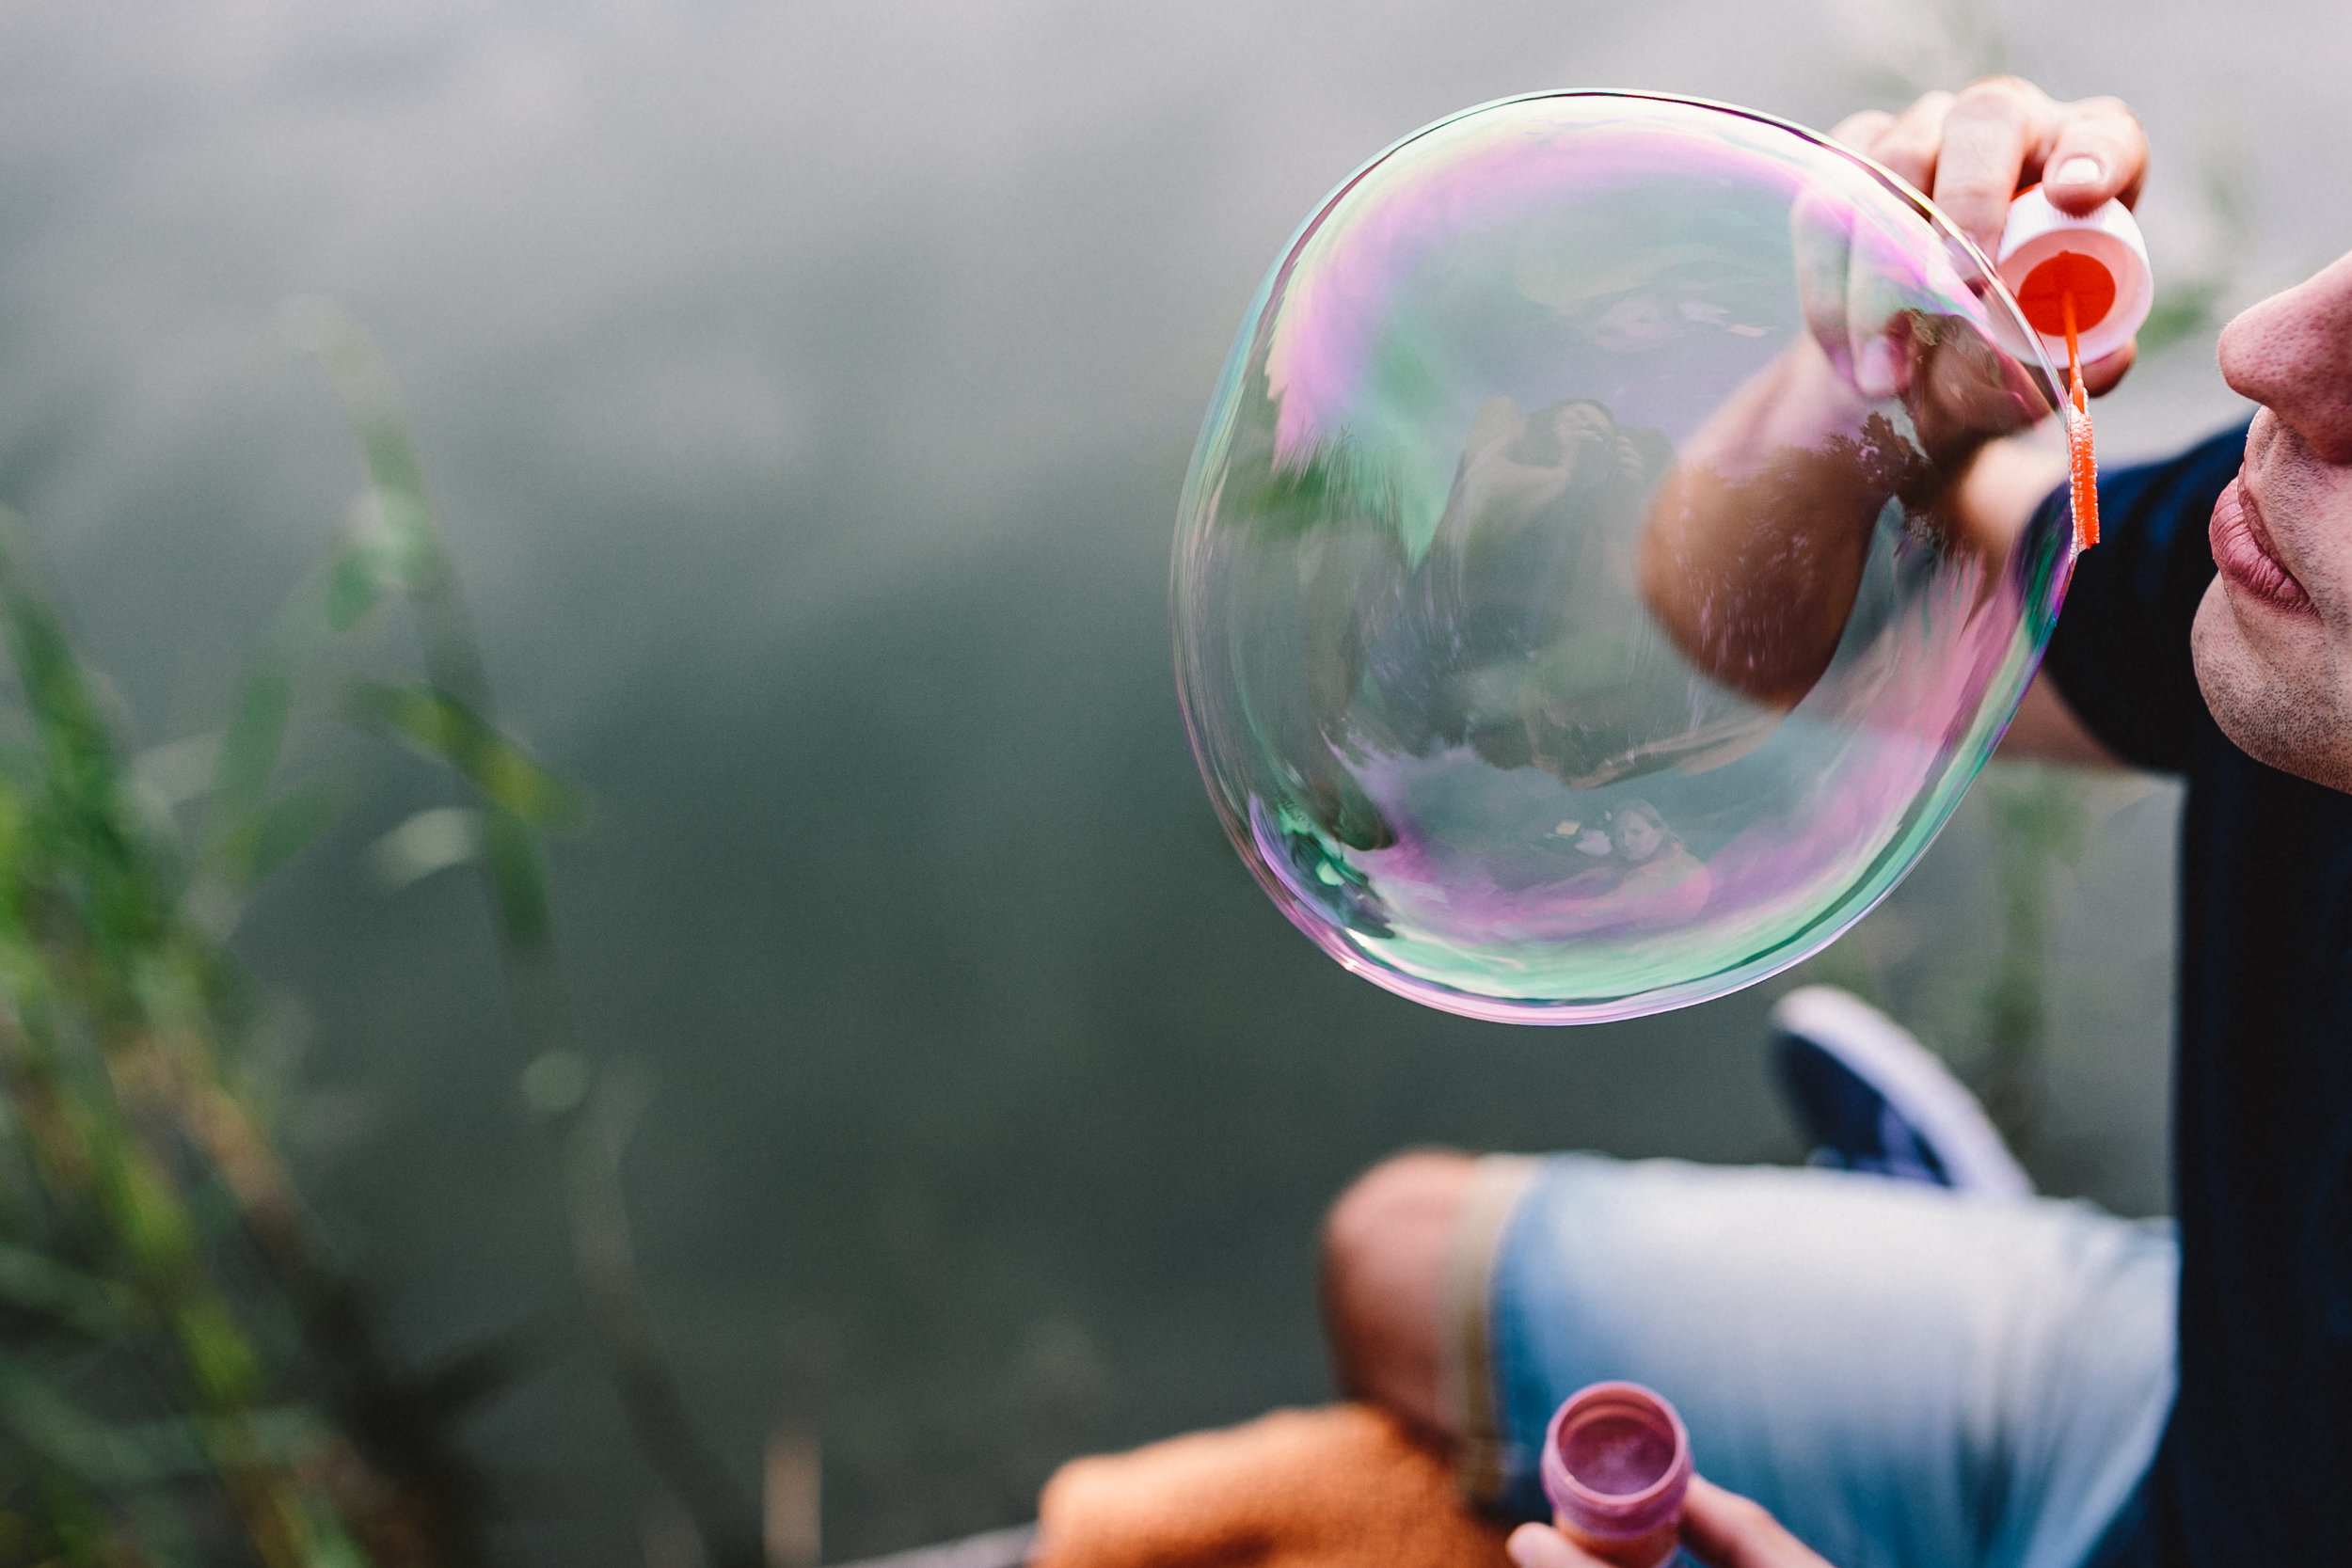 kaboompics_Having fun with soap bubbles in the nature.jpg